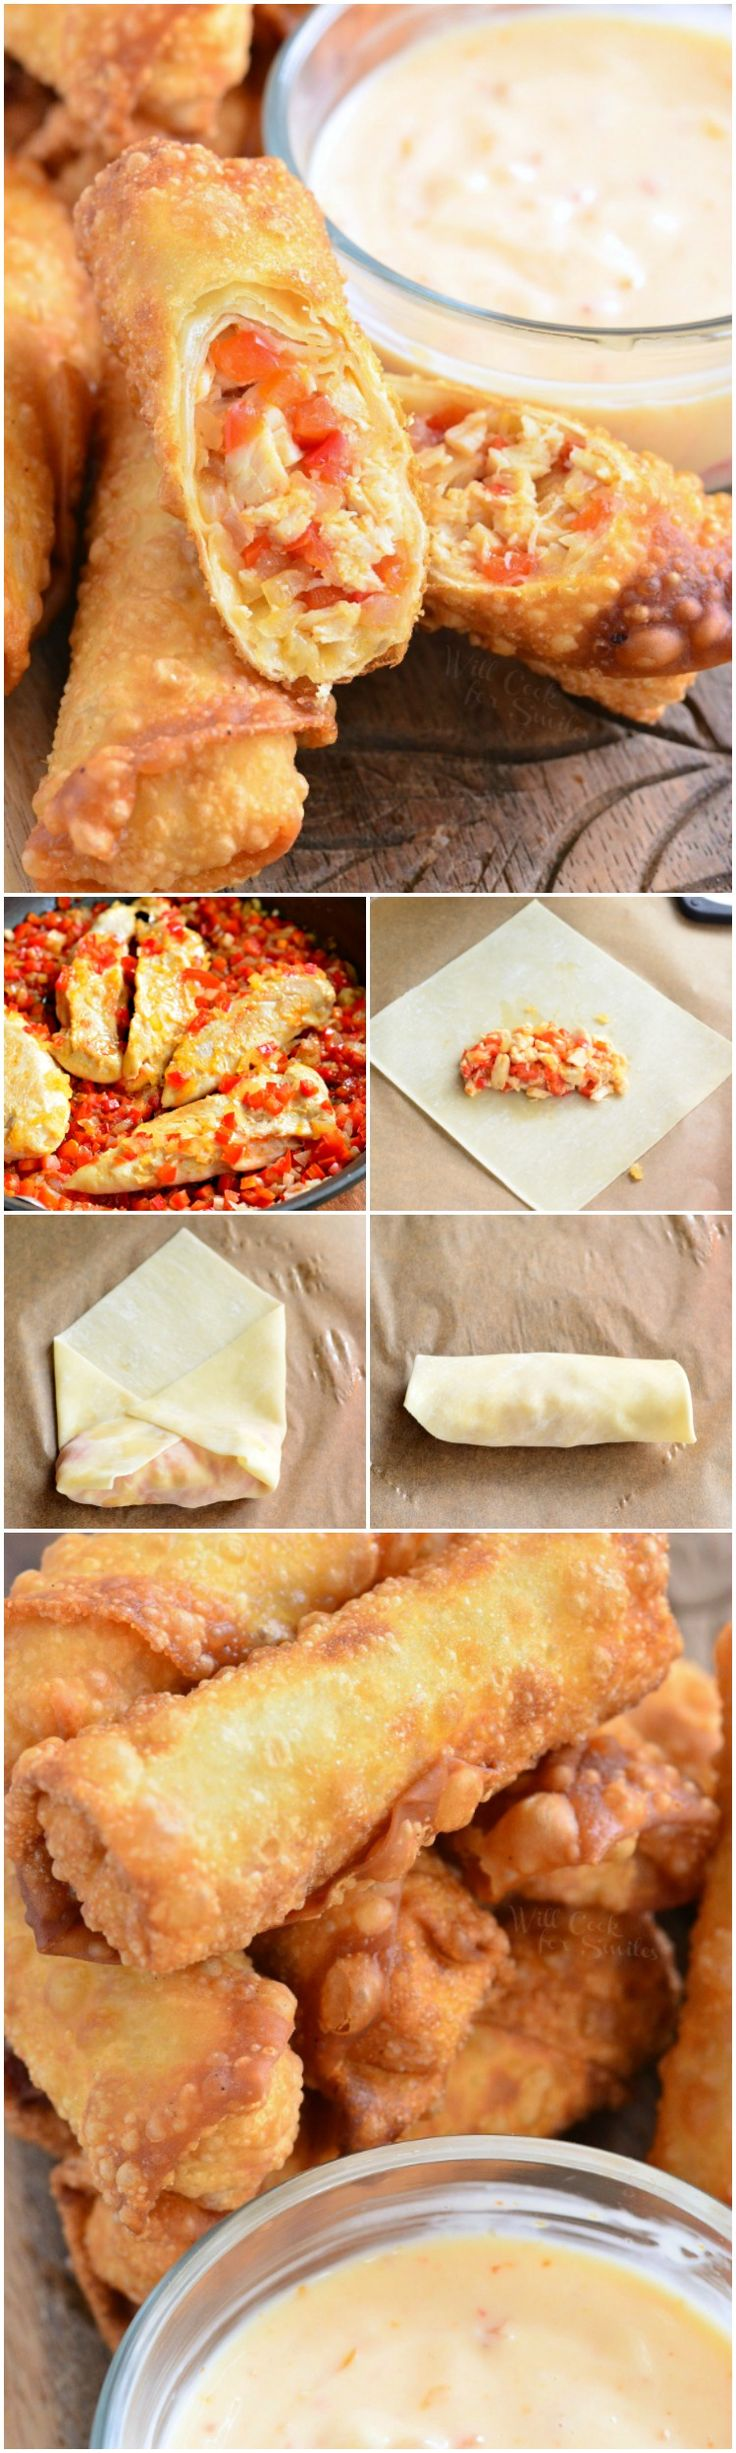 Sweet Chili Chicken Egg Rolls with Creamy Sweet Chili Sauce. Out-of-this-world-delicious egg rolls packed with beautiful sweet chili flavor!: